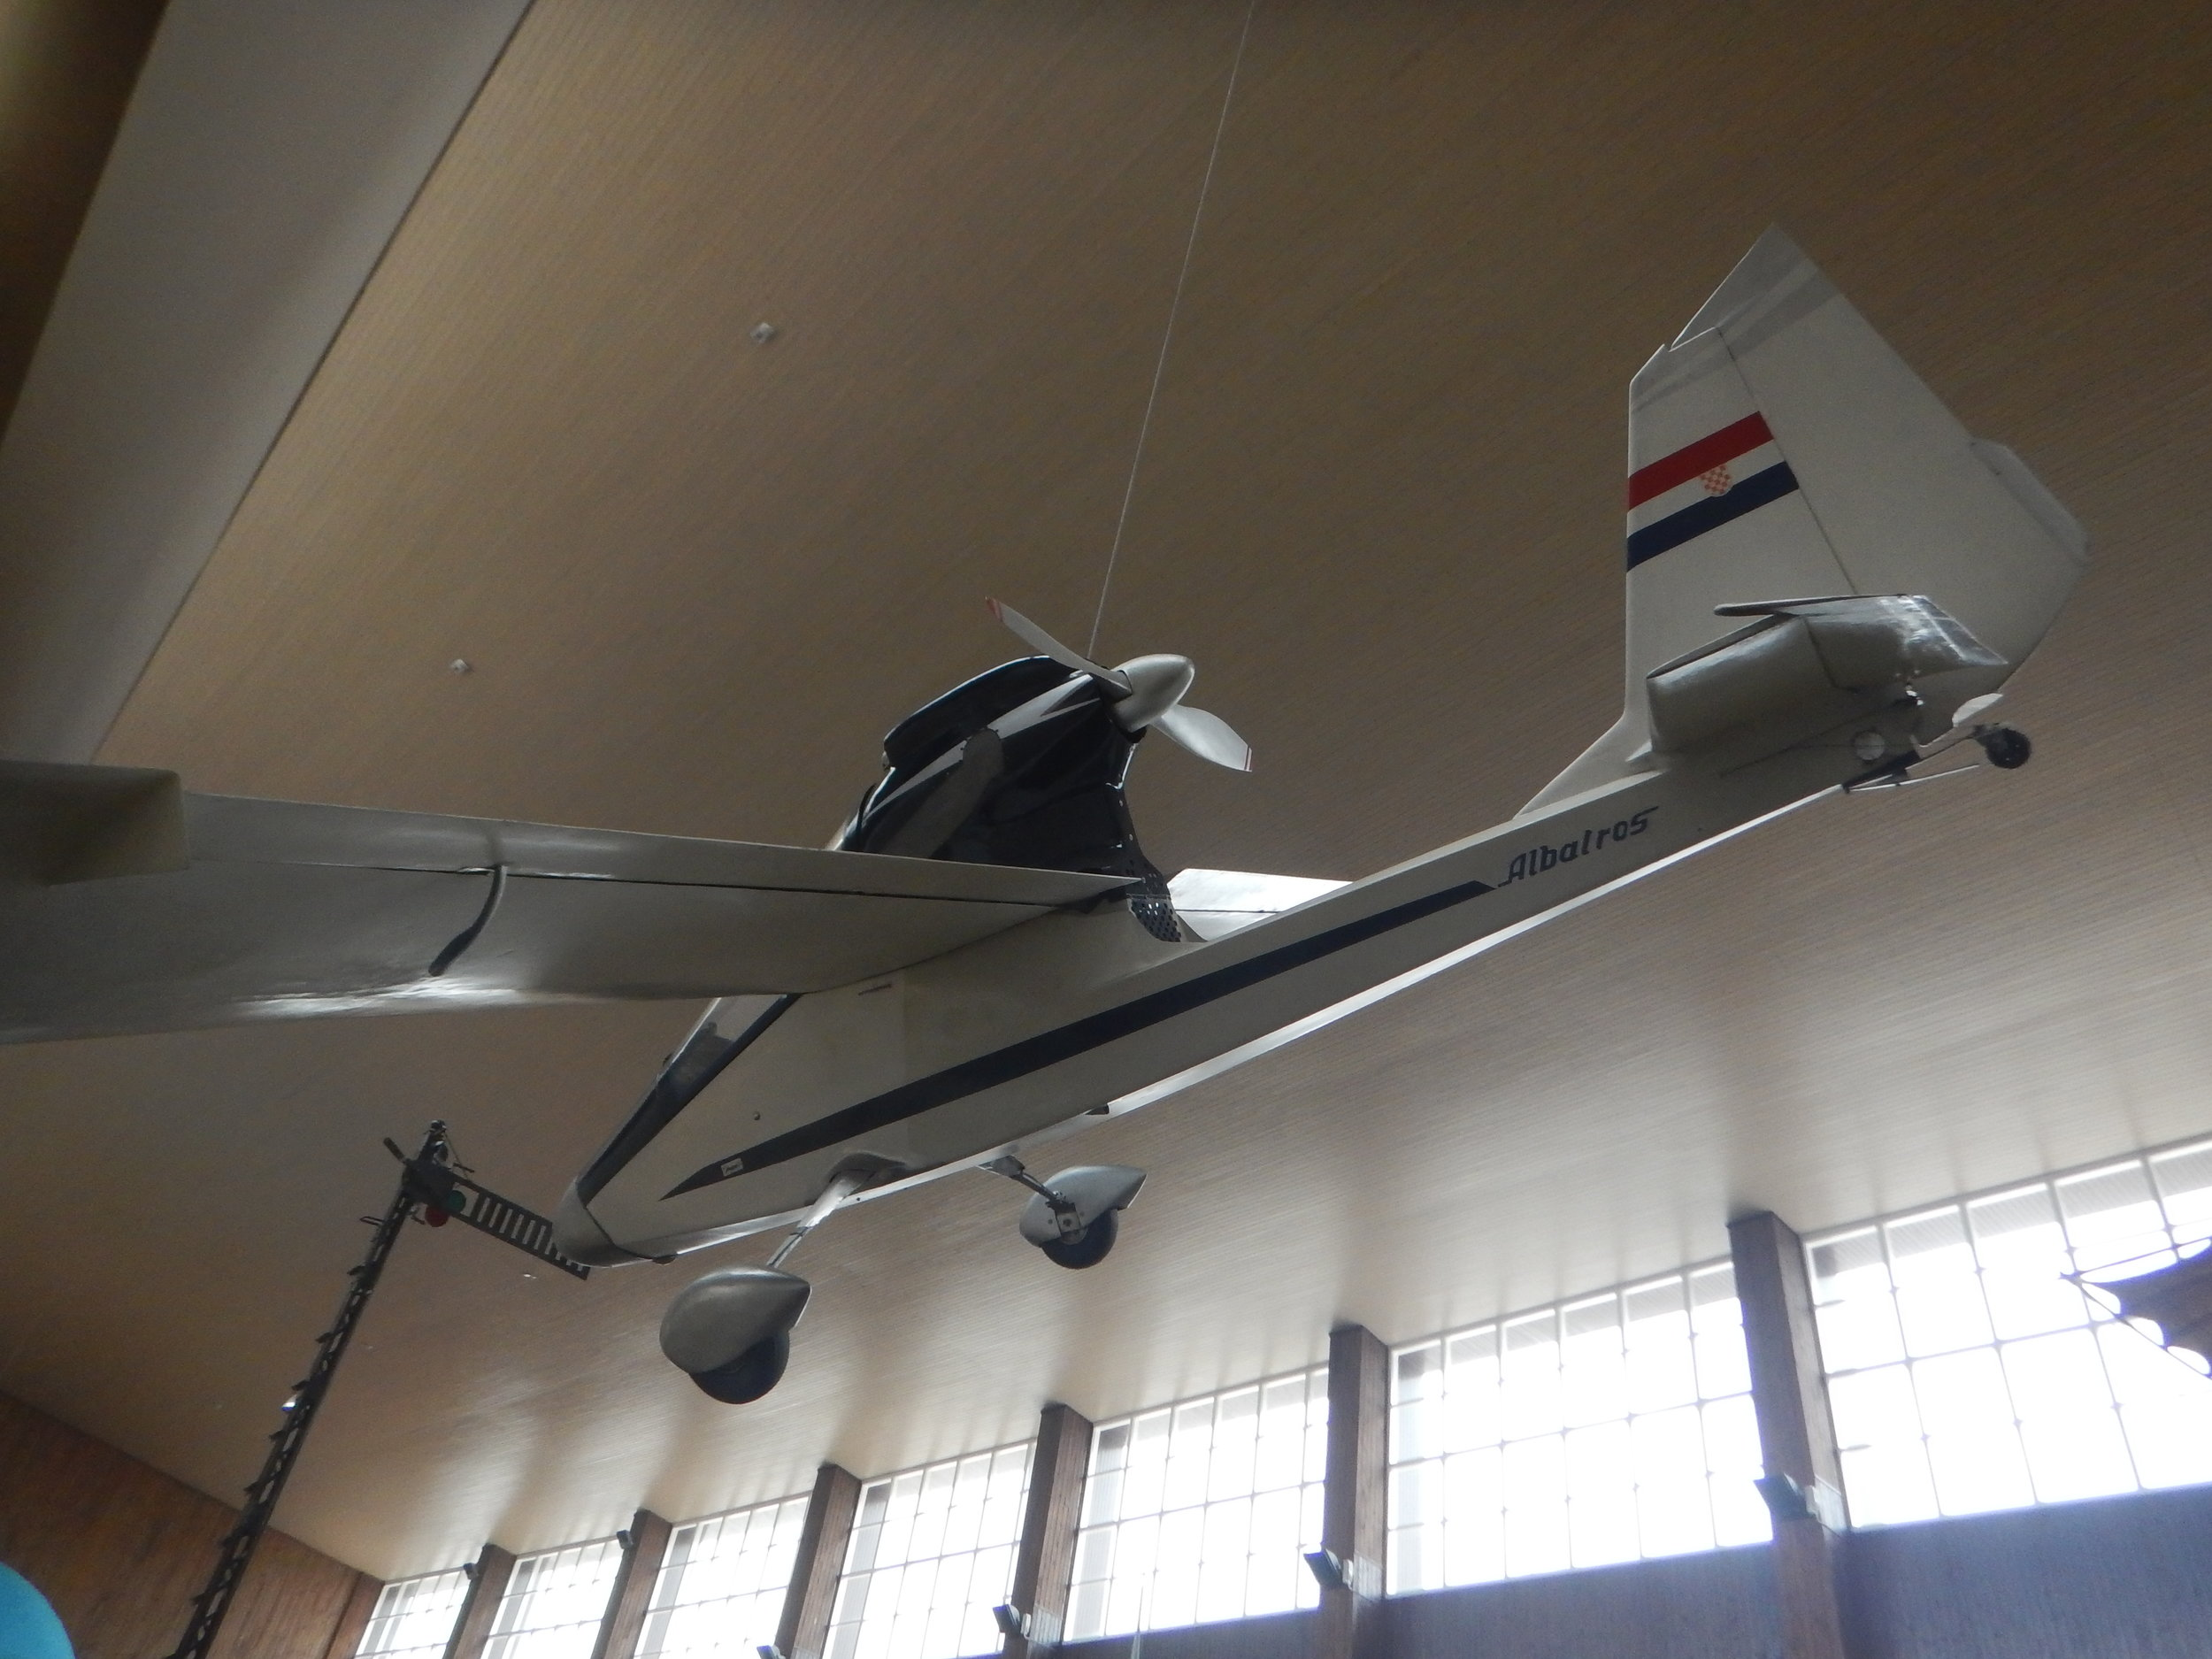 Albatres, small plane. Some think I am an Albatross, they meet and mate for life.